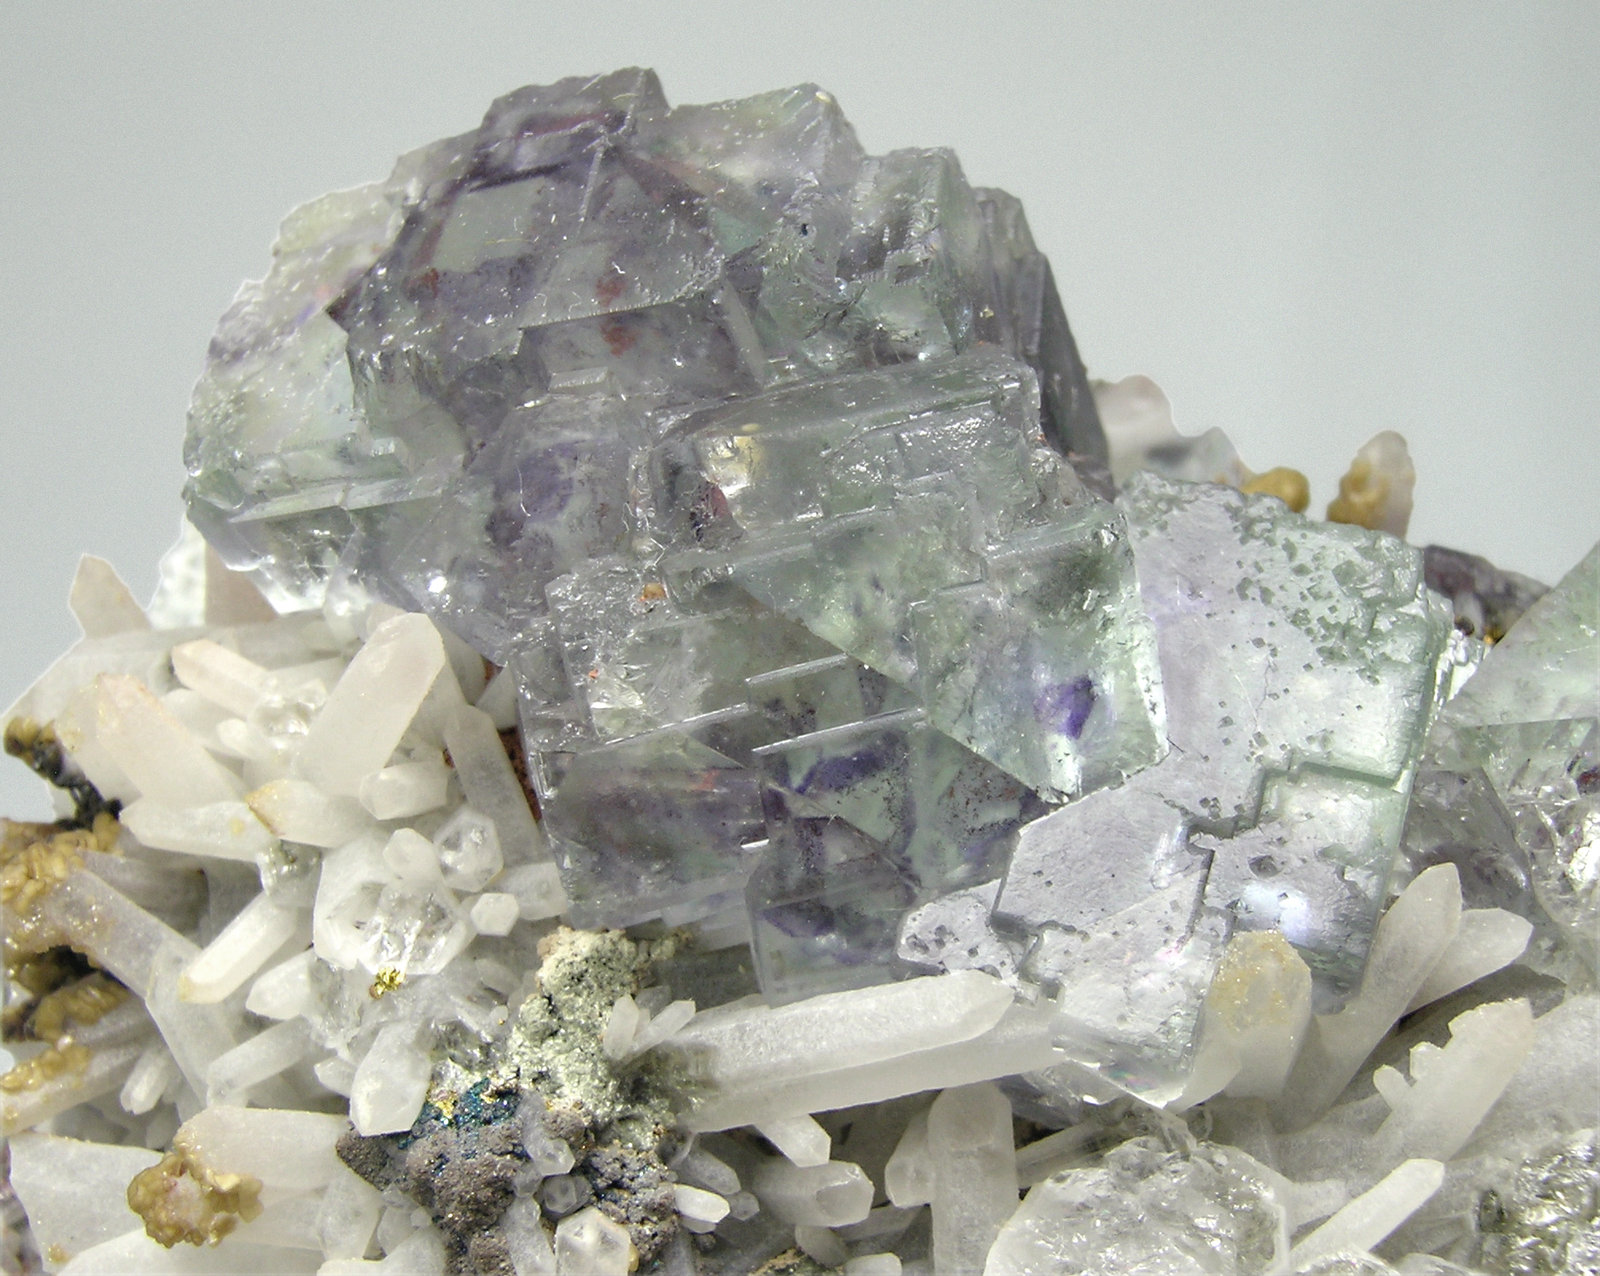 Fluorite with Quartz, Chalcopyrite and Siderite